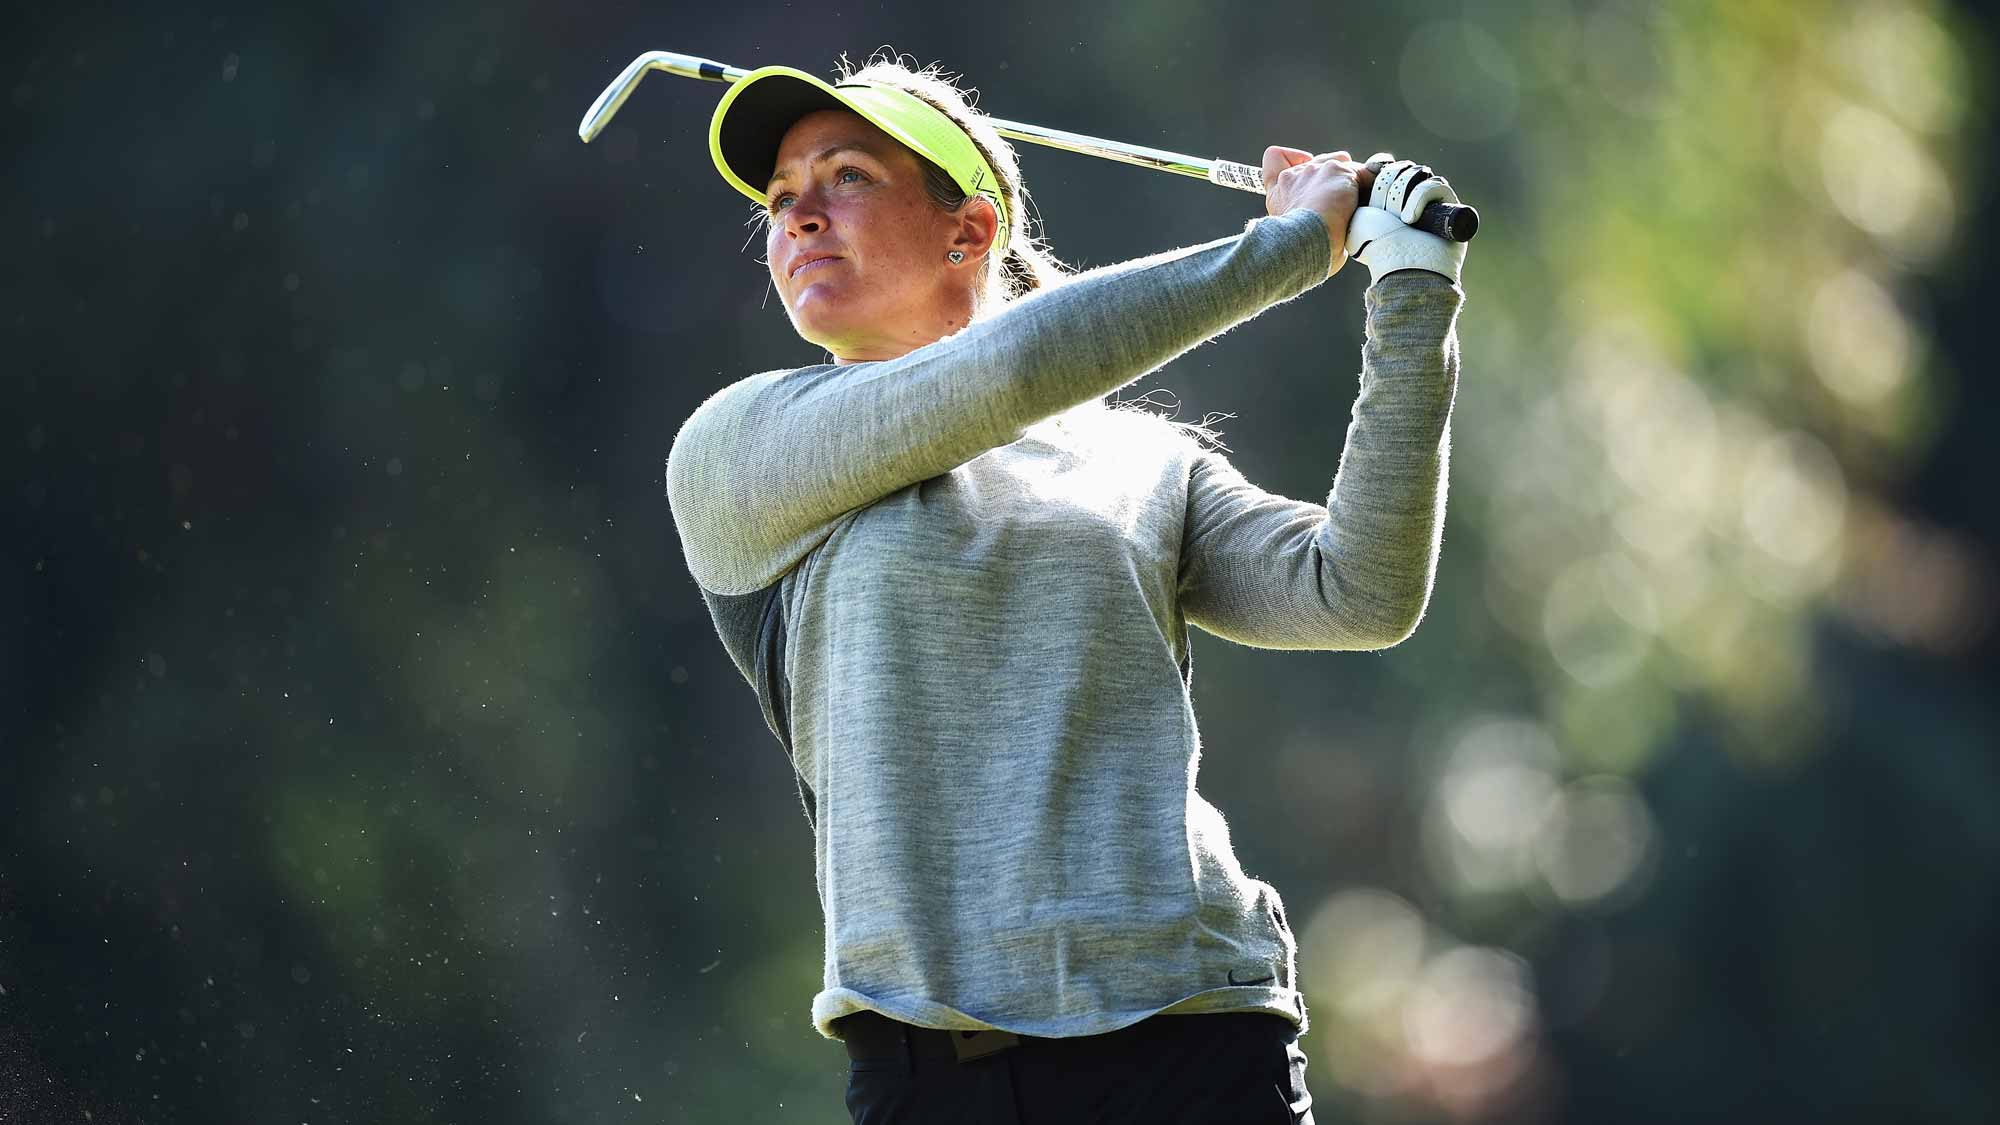 Suzann Pettersen during the first round of the Evian Championship